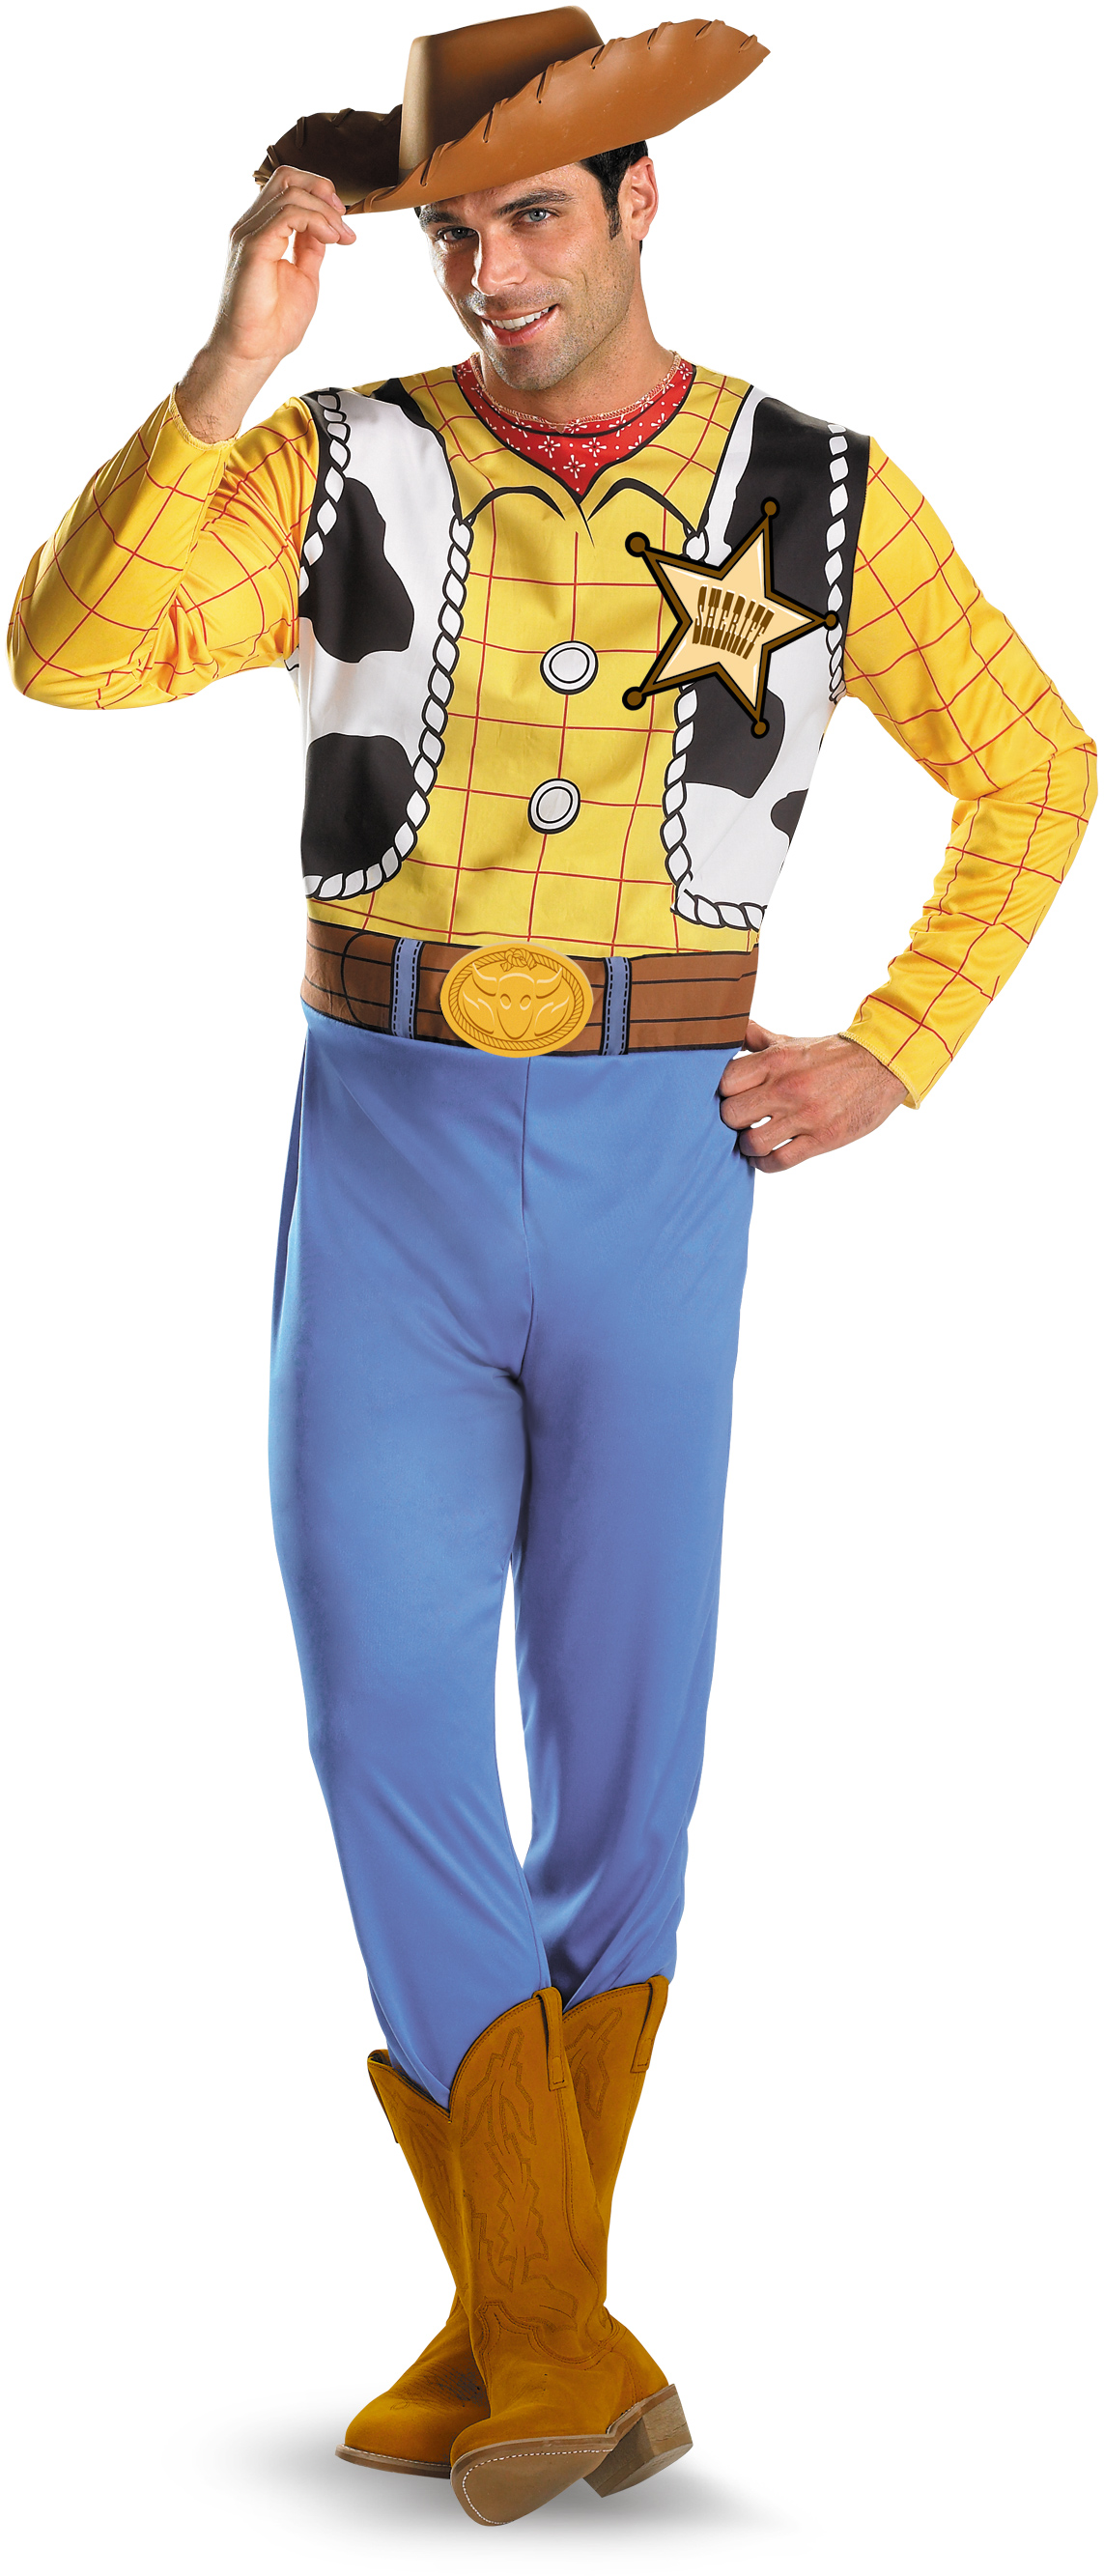 Men's Disney Toy Story - Woody Classic Adult Plus Costume - Yellow - XX-Large (50-52) BS-188024